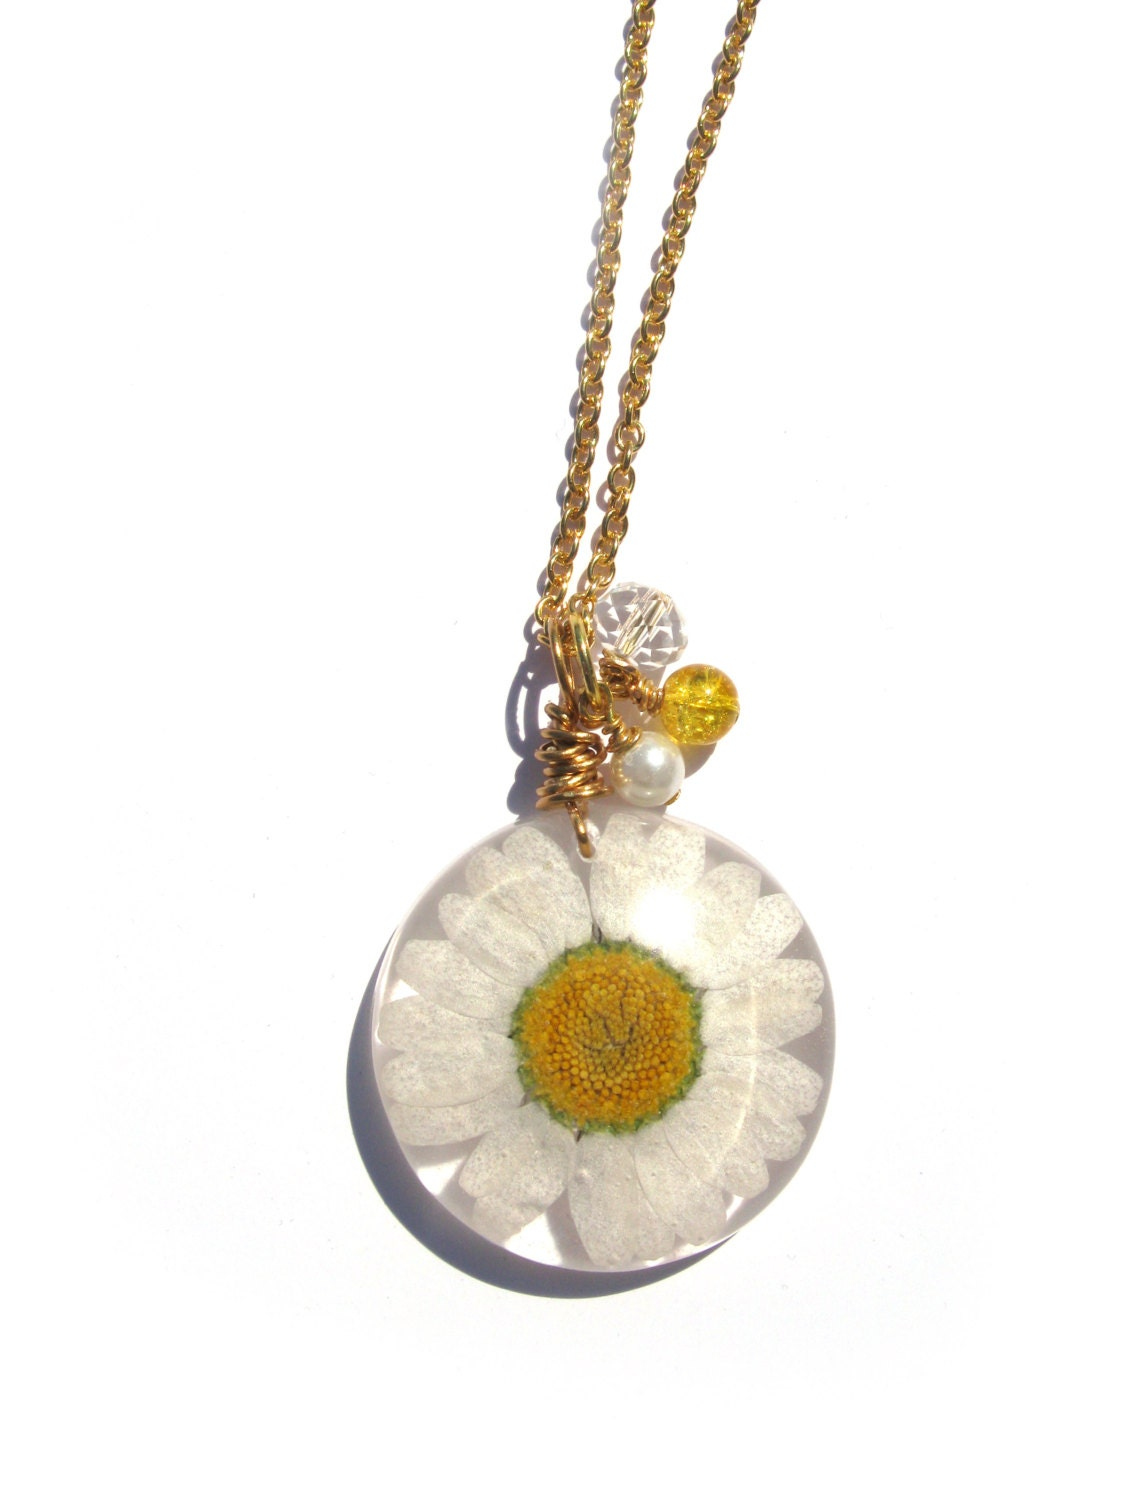 Real Daisy Necklace Pressed Flower Jewelry Resin Necklace